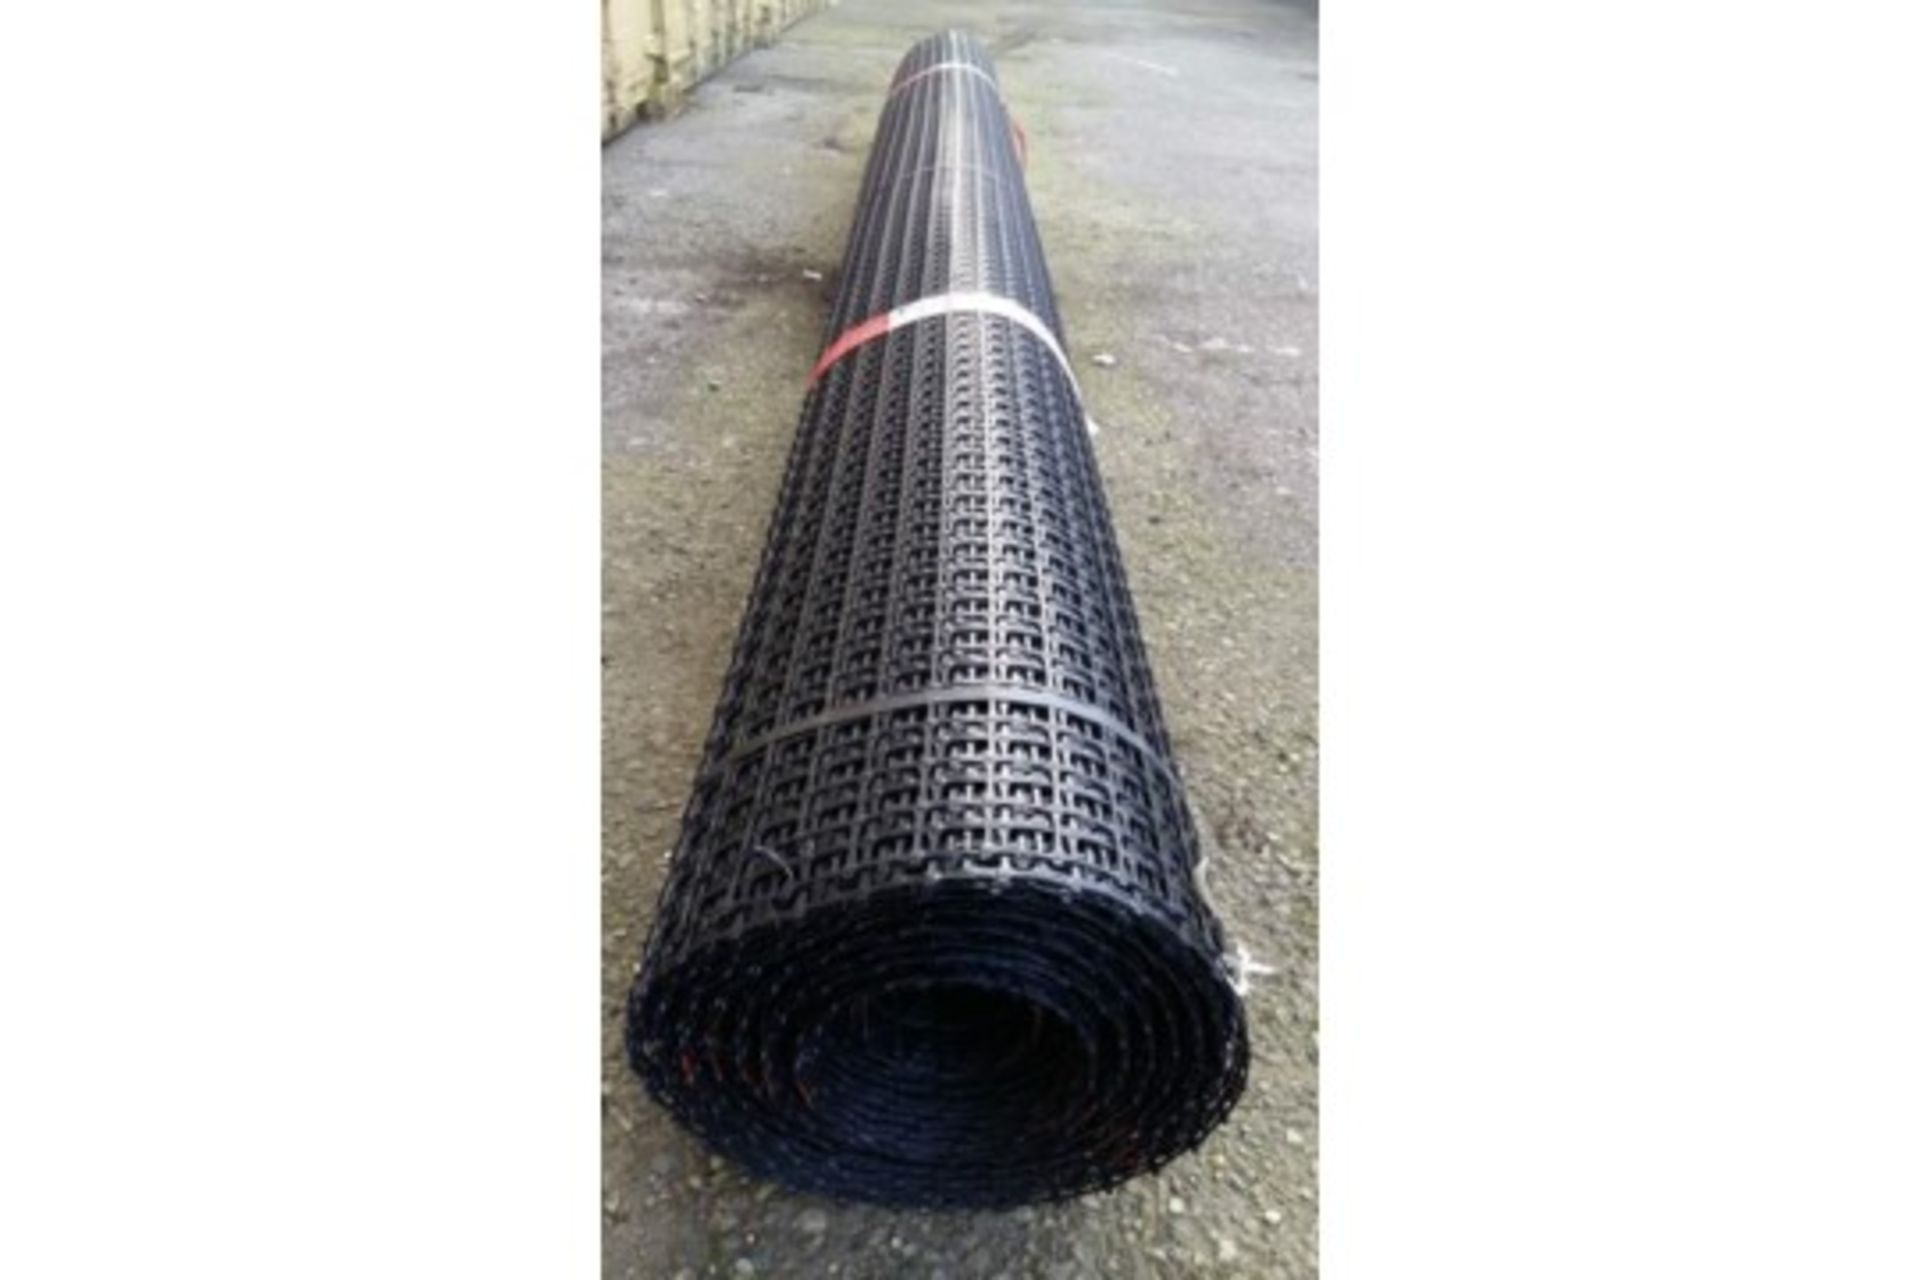 Lot 25868 - 1 x UNISSUED Tensar SS20 Geogrid Ground Foundation Reinforcement Roll 4m x 75m